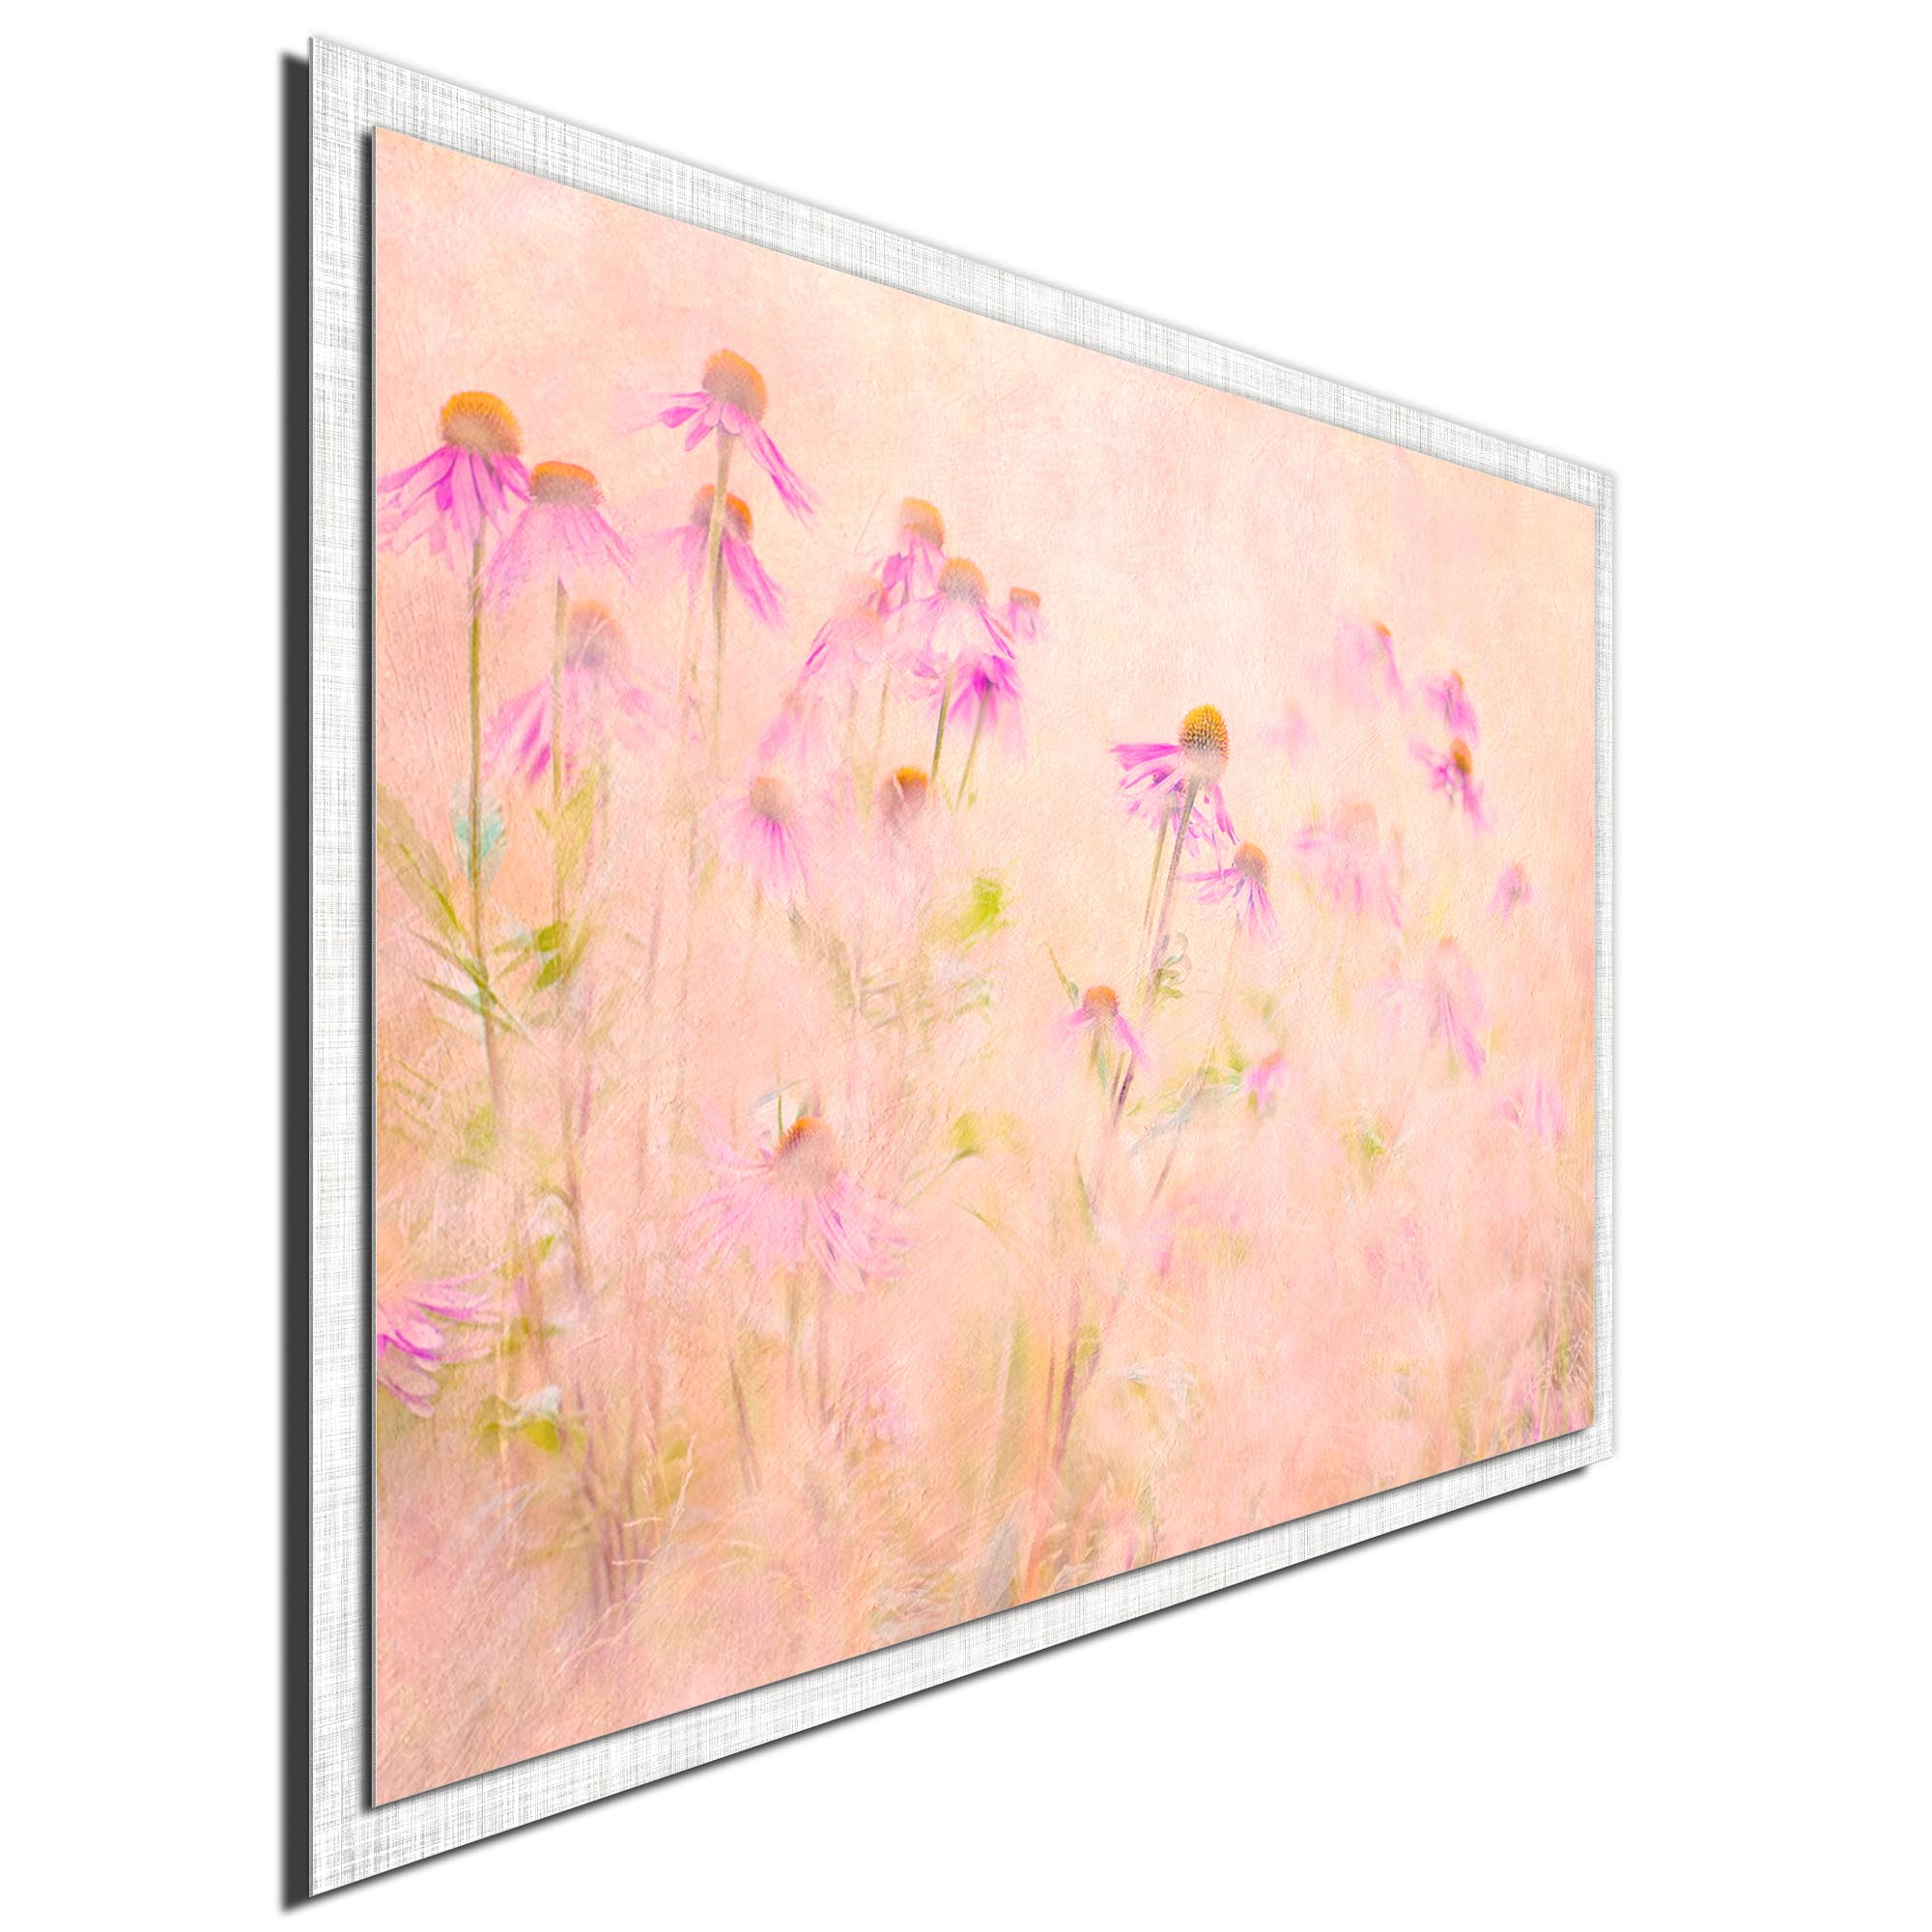 Summertime by Jacky Parker - Modern Farmhouse Floral on Metal - Image 2